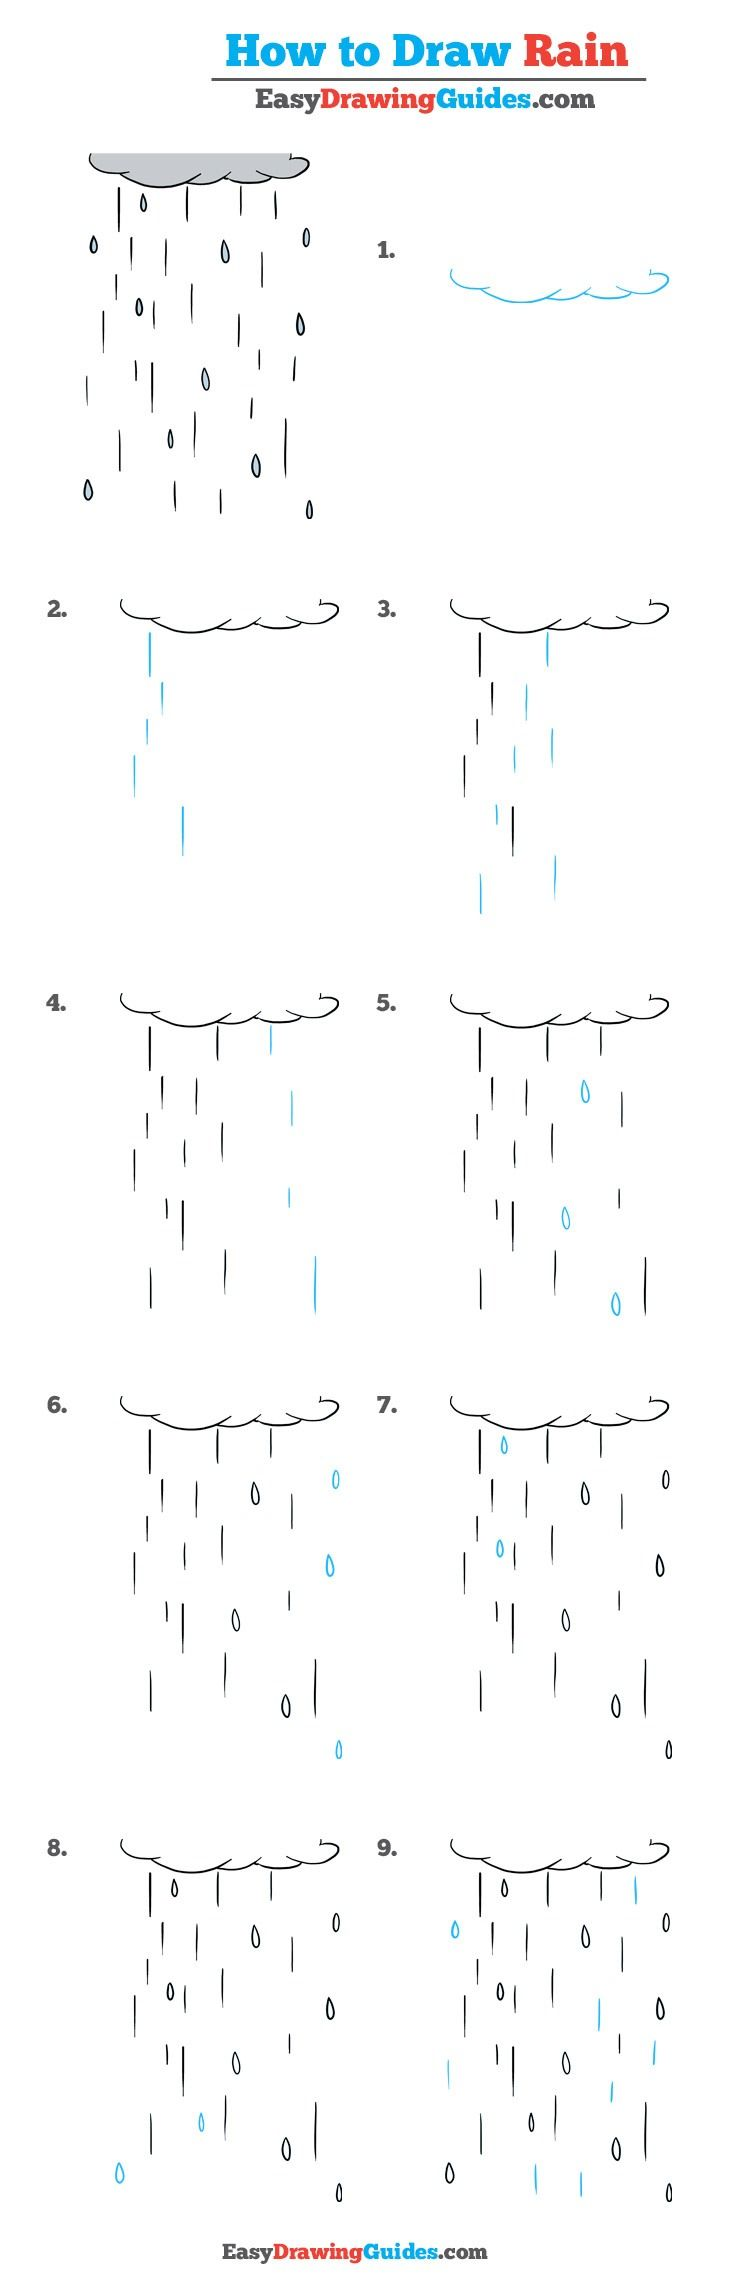 Learn How to Draw Rain: Easy Step-by-Step Drawing Tutorial for Kids and Beginners. #Rain #drawingtutorial #easydrawing See the full tutorial at https://easydrawingguides.com/how-to-draw-rain-really-easy-drawing-tutorial/.